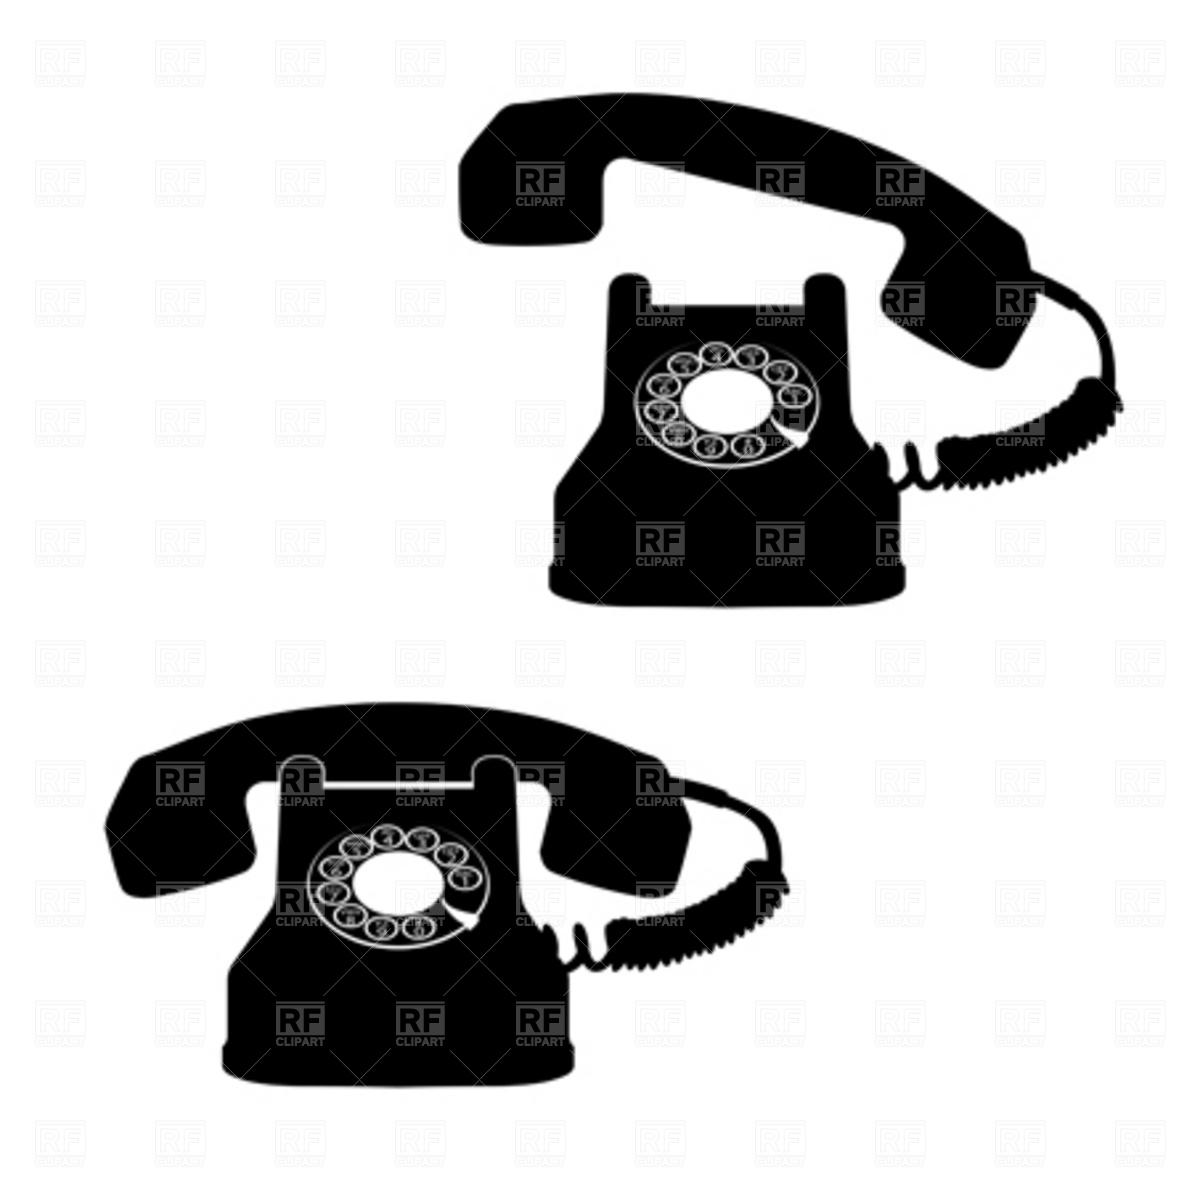 Retro Telephone Download Royalty Free Vector Clipart  Eps